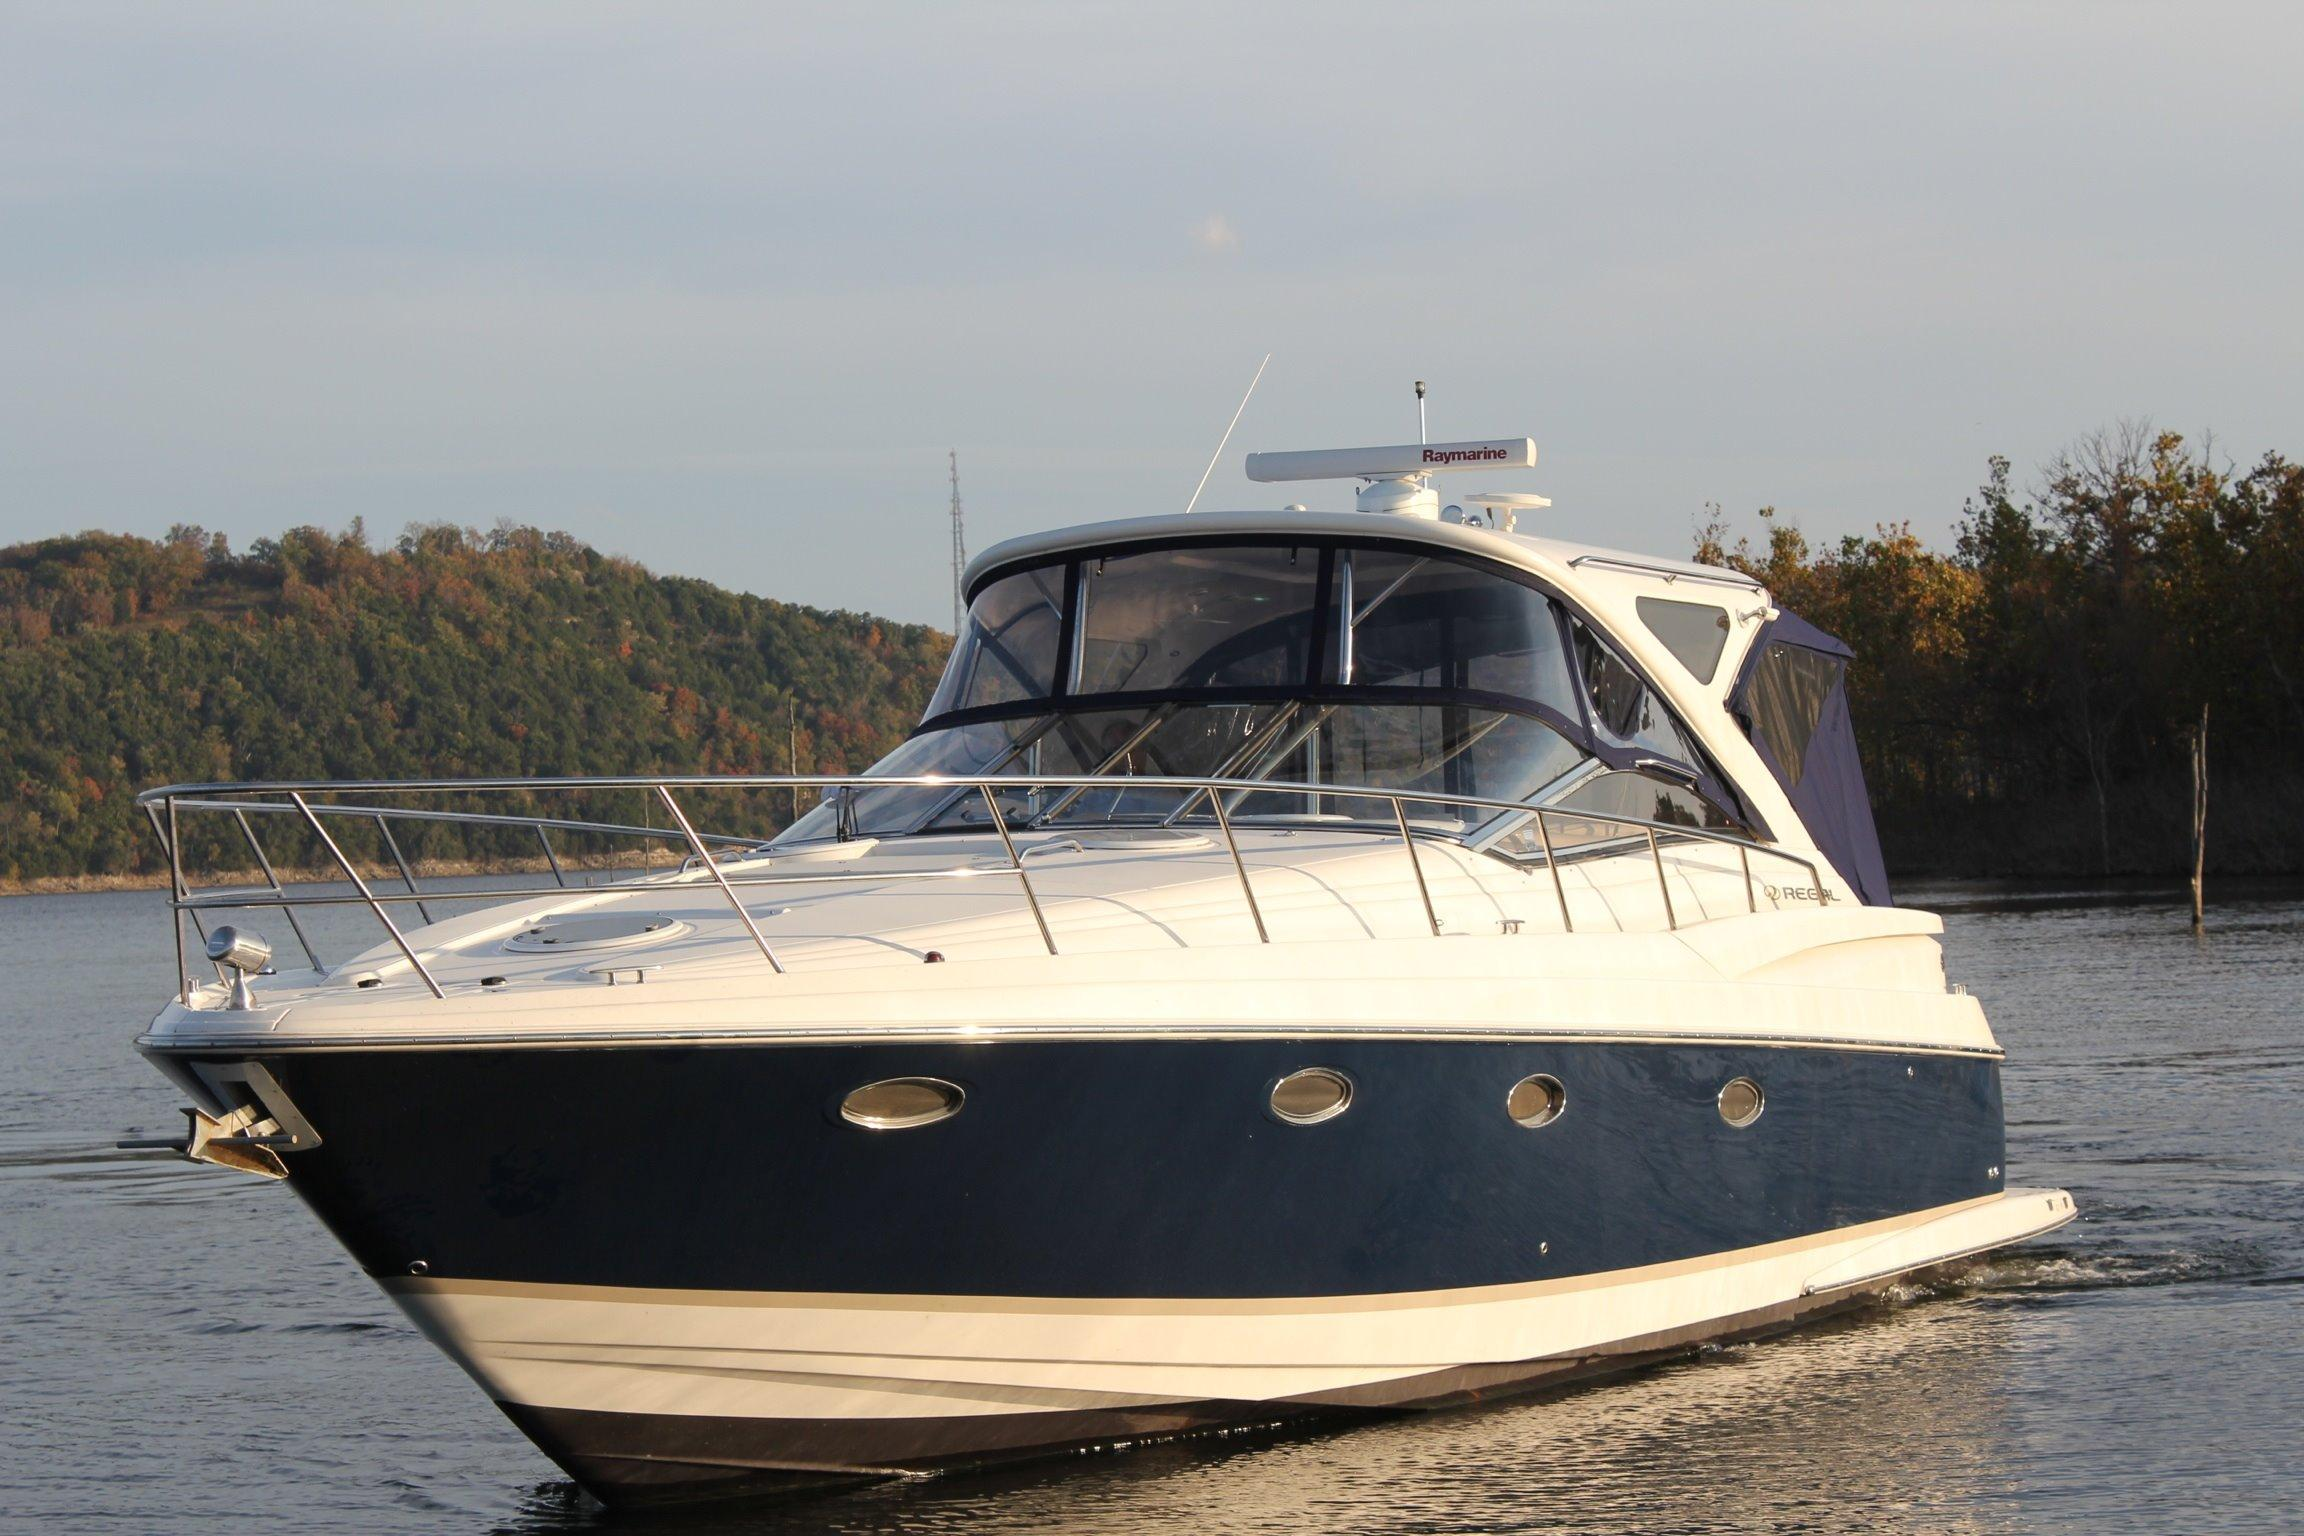 Table Rock (MO) United States  city pictures gallery : 2008 Regal 4060 Commodore IPS Power Boat For Sale www.yachtworld.com